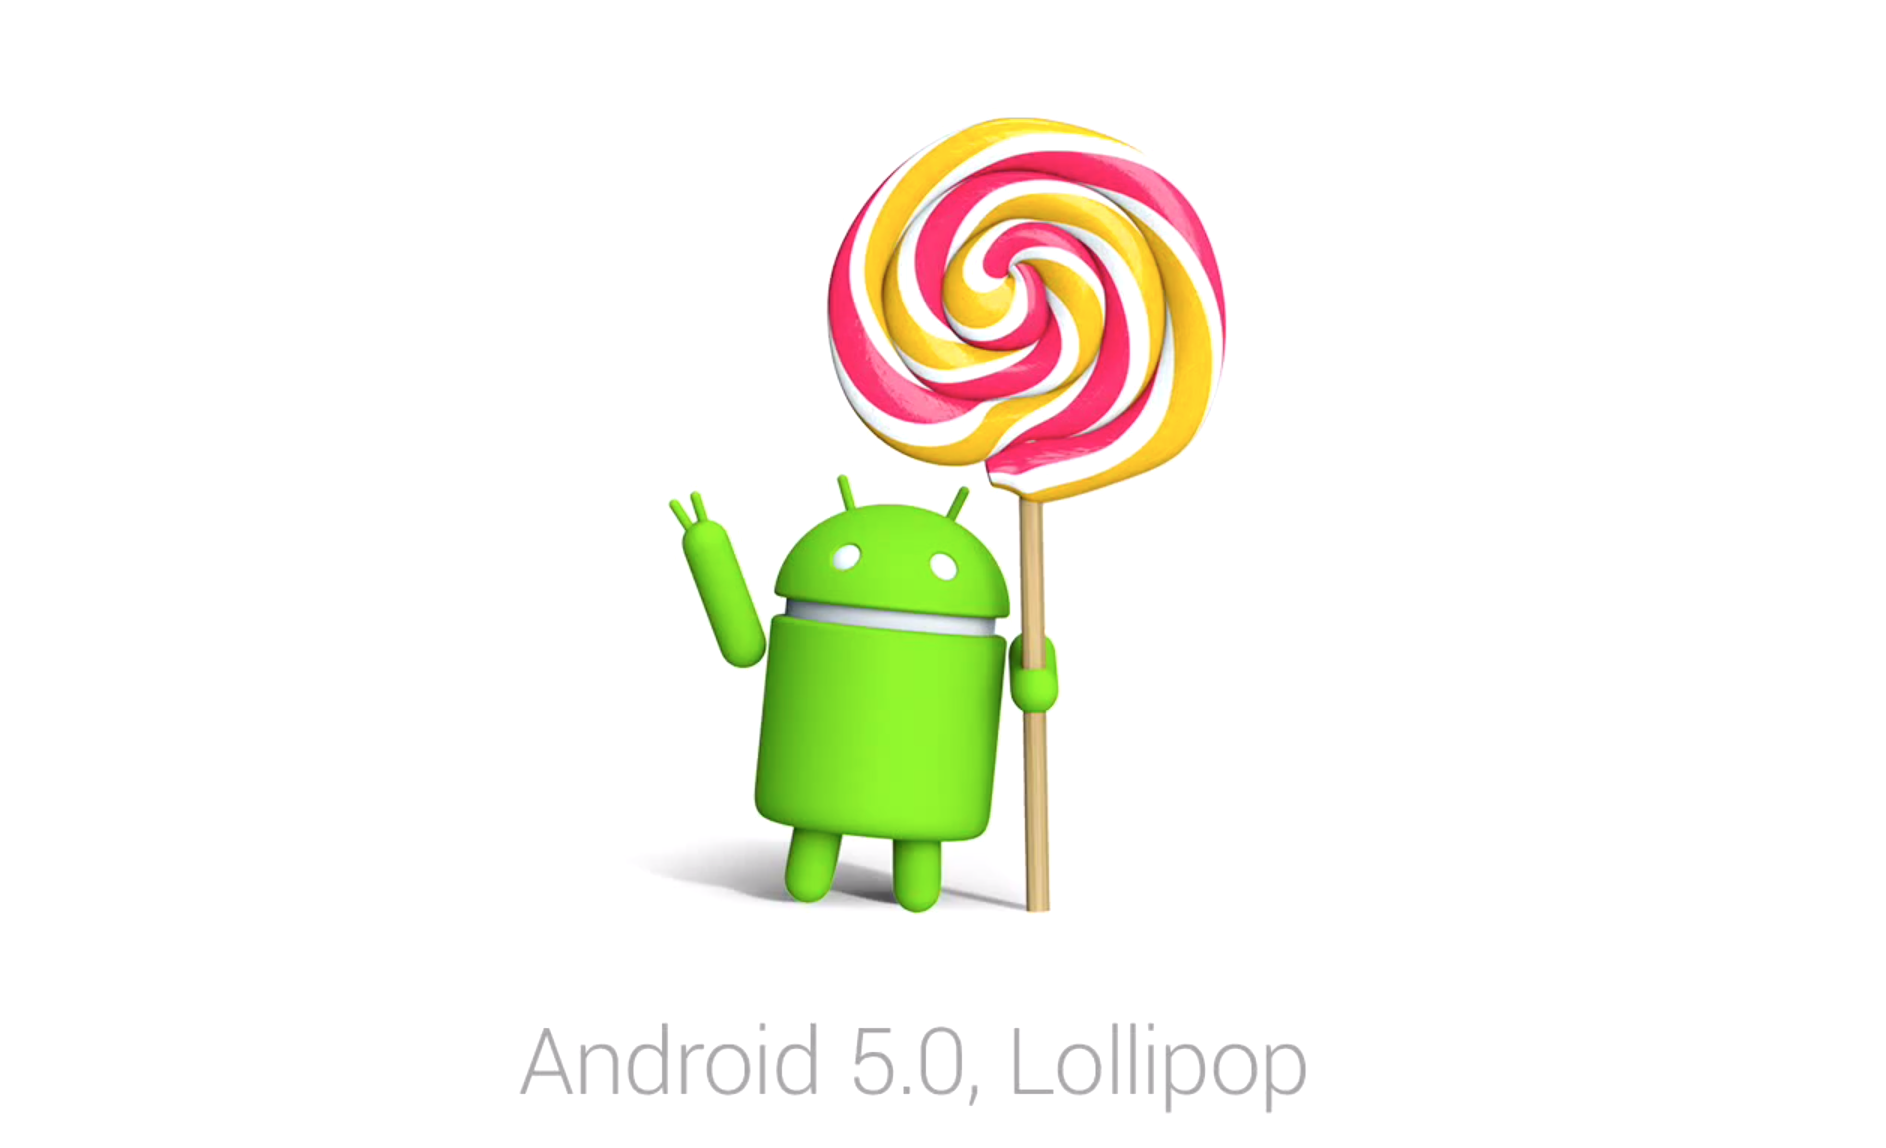 Google-officially-released-Android-5.0-Lollipop-source-code-into-the-AOSP-Details